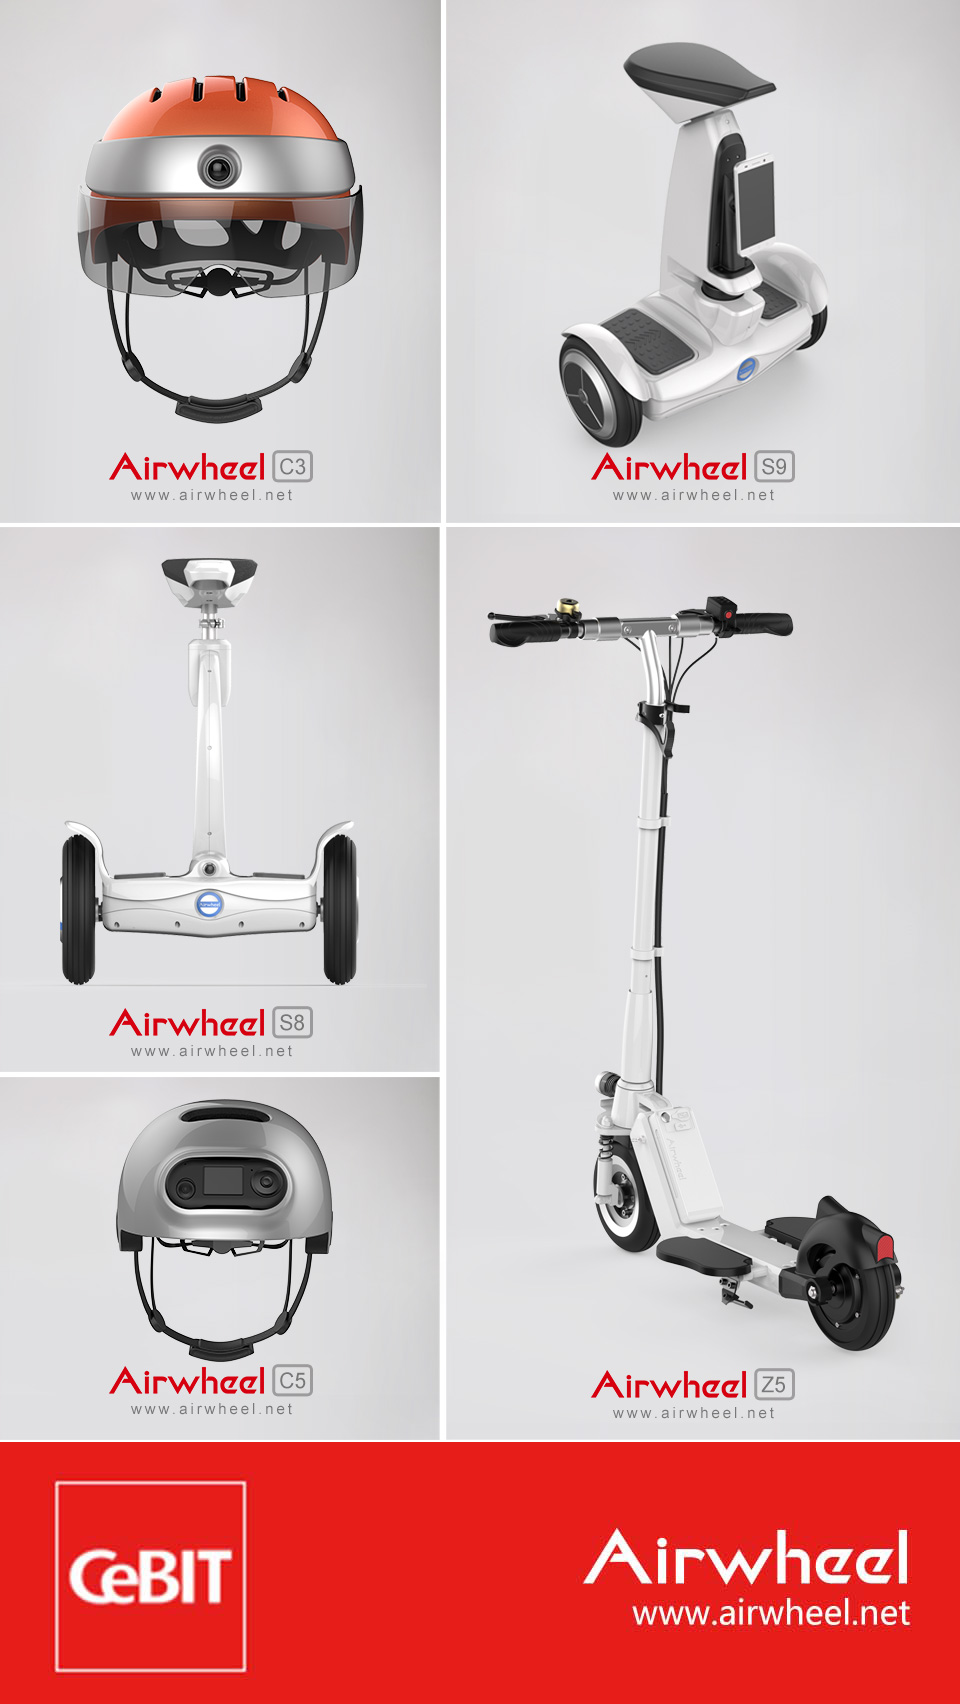 Airwheel S9 wheeled mobile robot